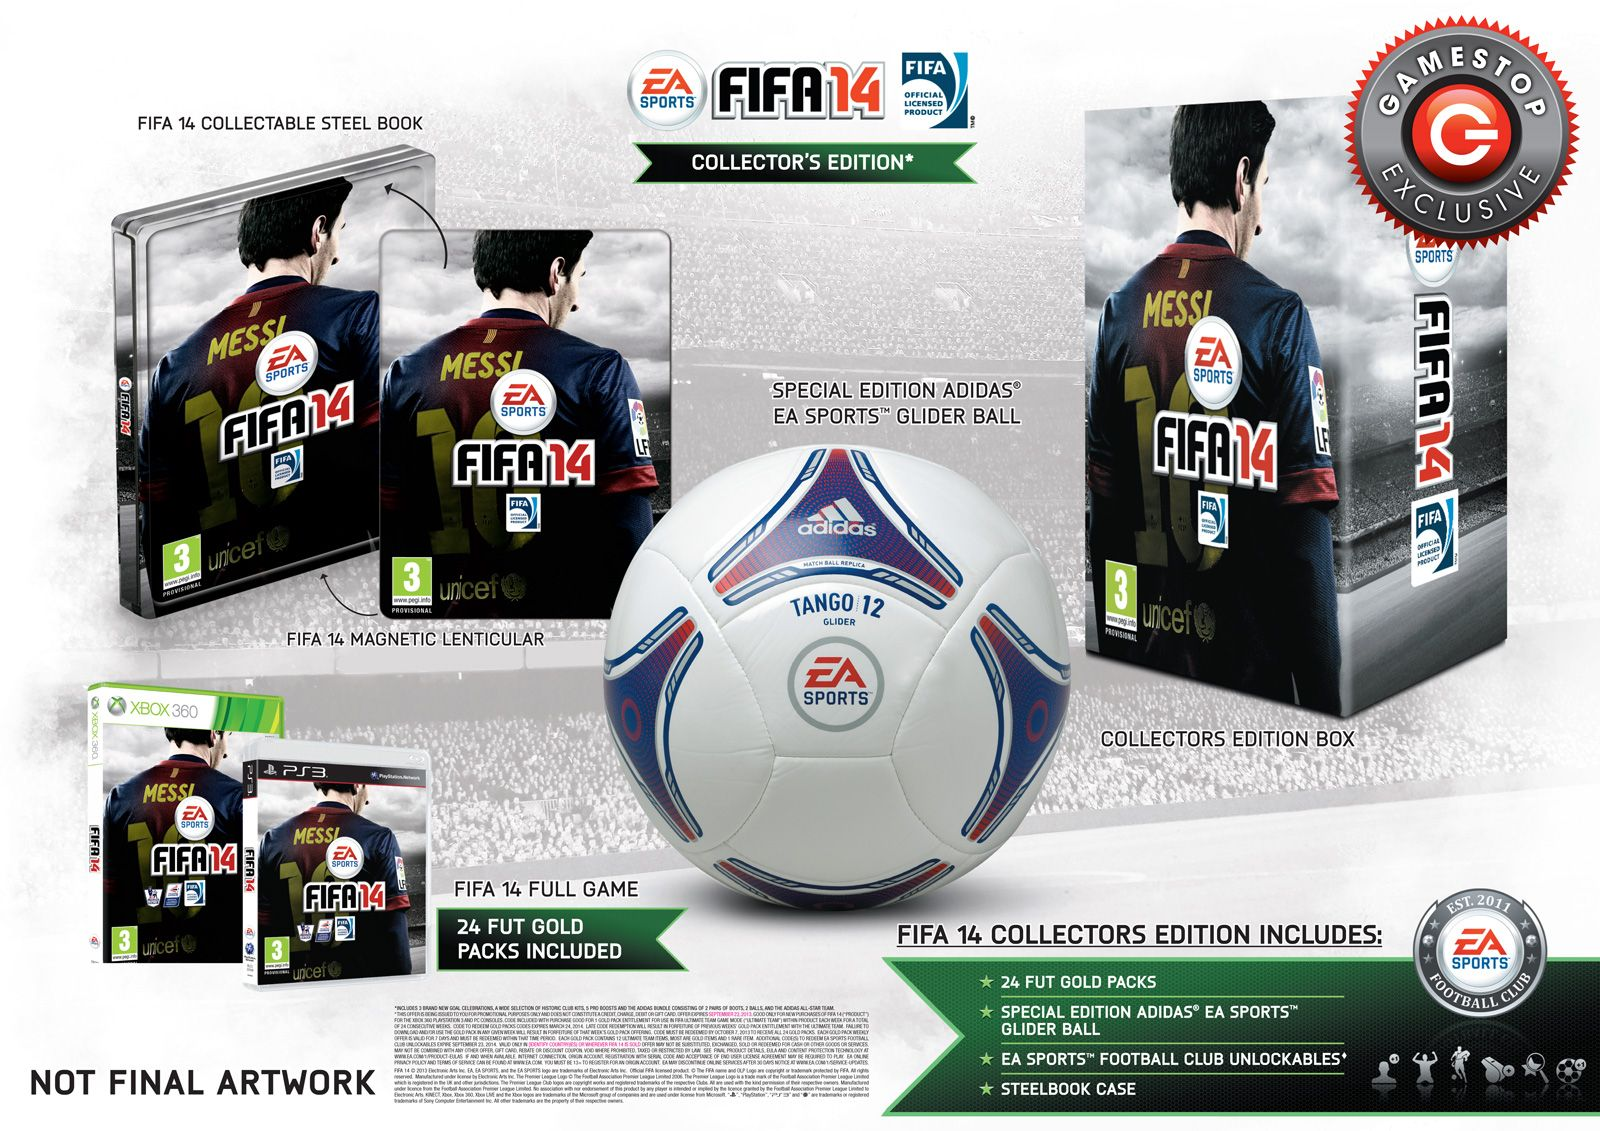 The GameStop Exclusive Fifa 14 Collector's Edition comes with a ...